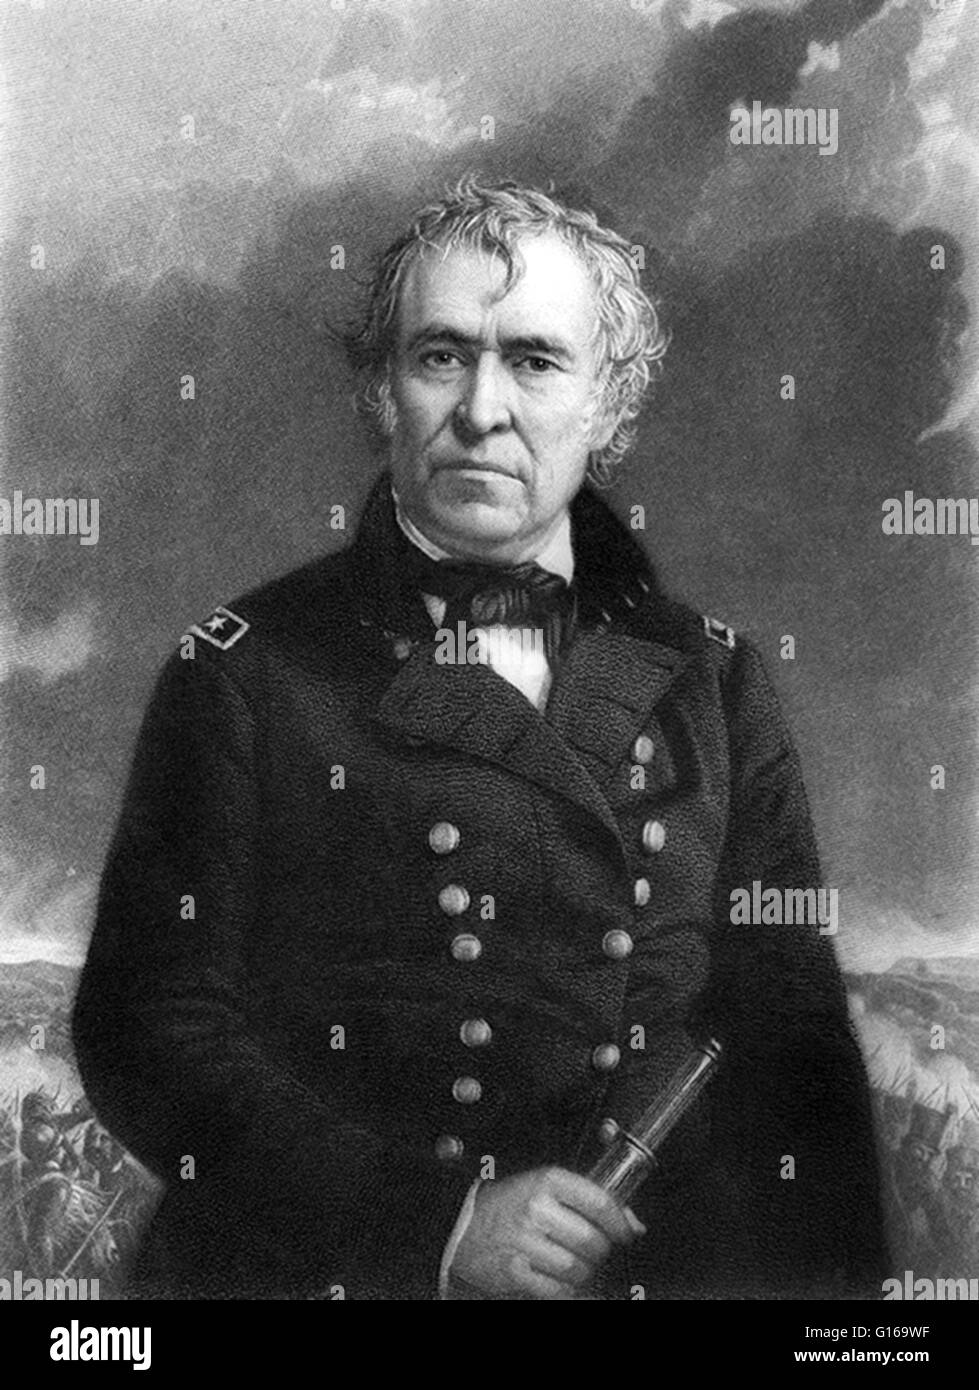 Zachary Taylor (November 24, 1784 - July 9, 1850) was the 12th President of the United States (1849-1850) and an Stock Photo